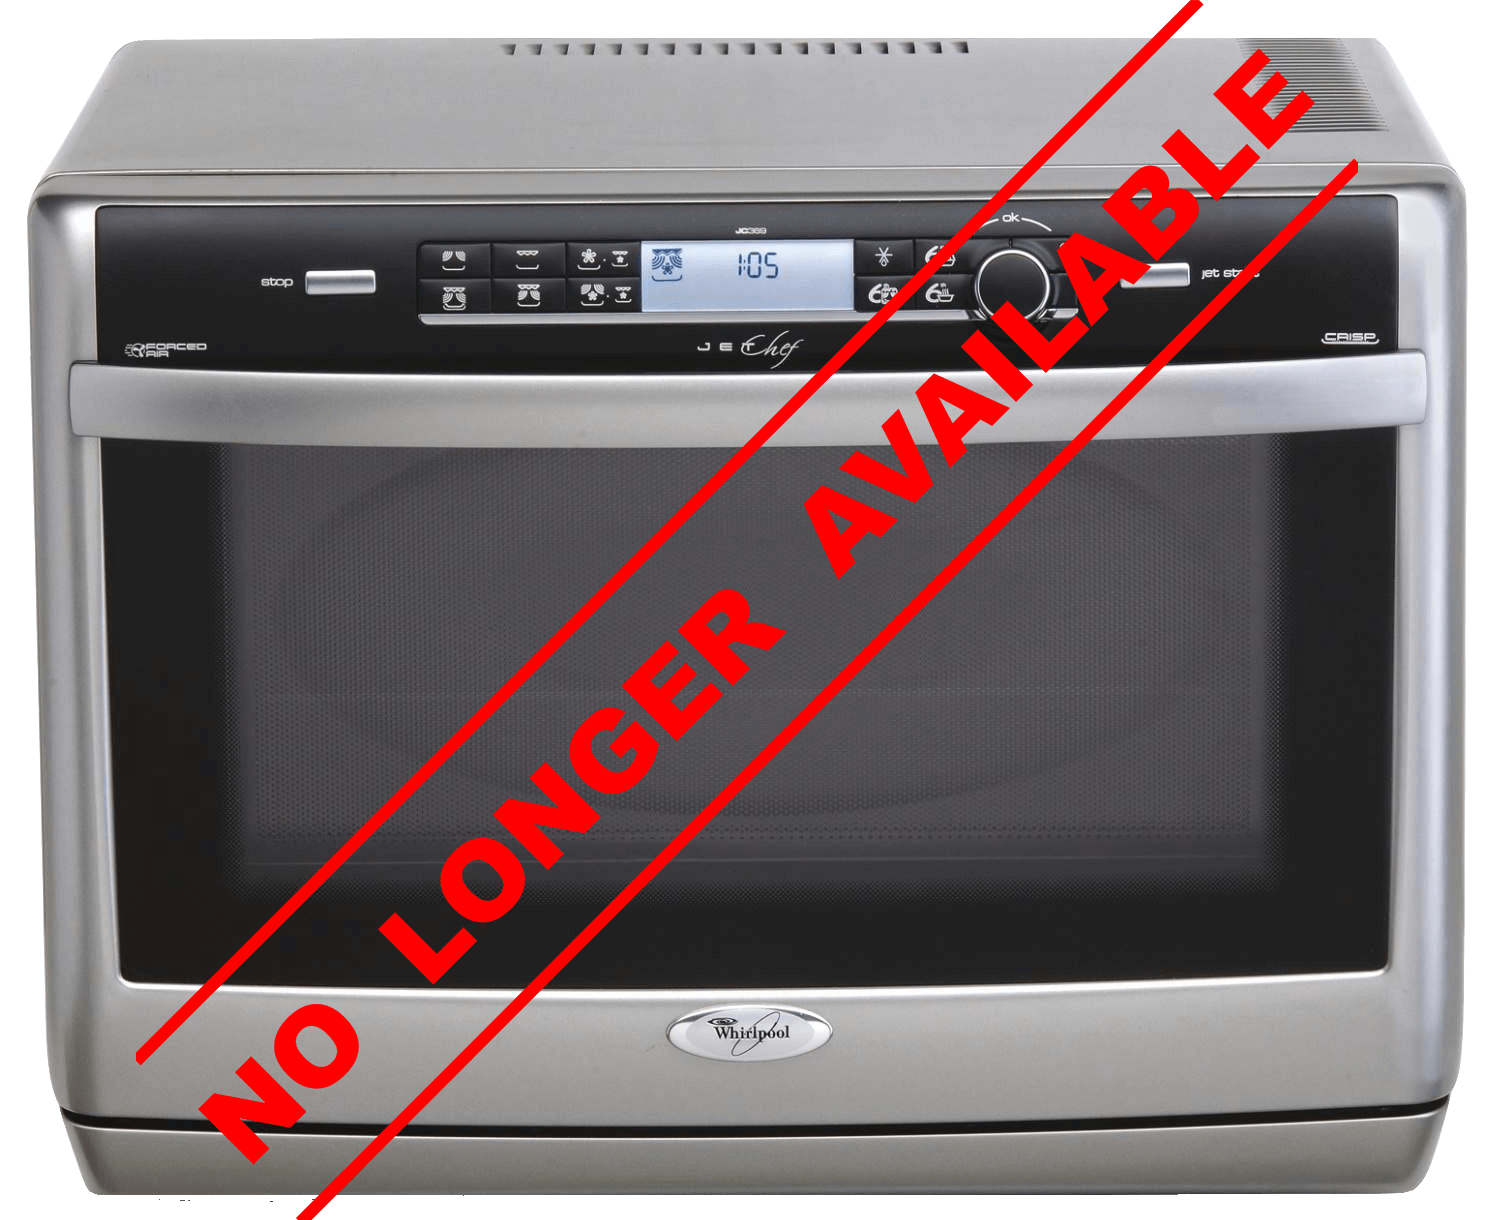 Whirlpool Convection Microwave With Grill Jt369 Sl